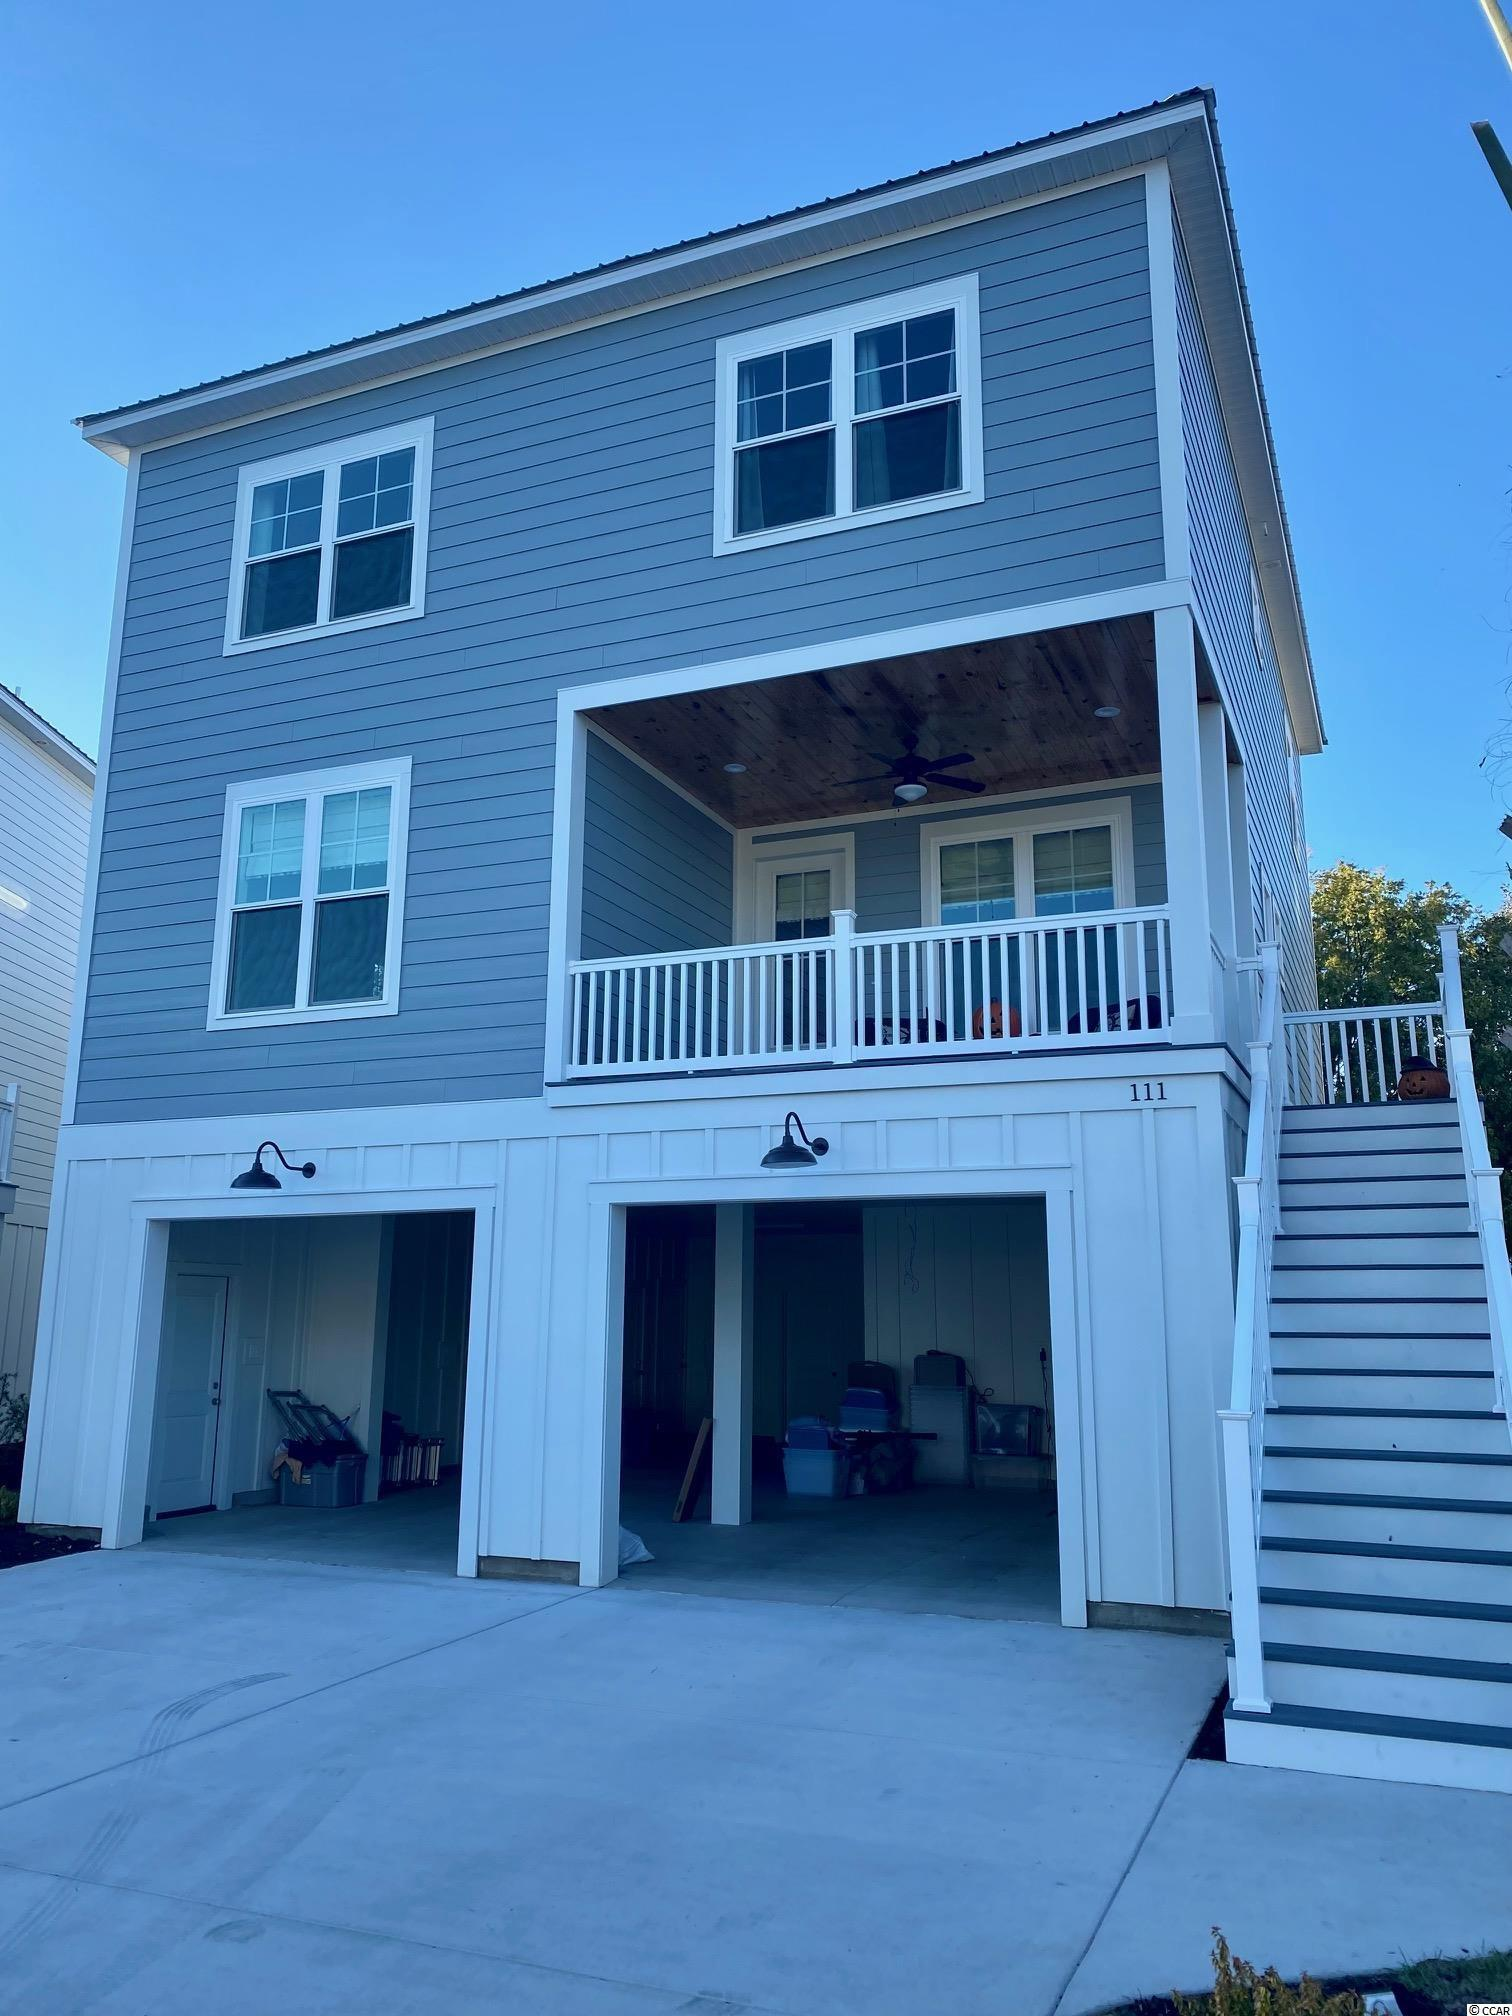 Beautiful new construction custom floor plan. This raised BRAND NEW beach style home offers 4 bedrooms and 3.5 baths and an upgraded flooring package to include Water Proof Vinyl Floors and Carpet. Parking and plenty of storage underneath and a beautifully landscaped yard. This neighborhood features a community pool and dock for inlet fun! This home is perfect for the Pawleys beach bum that doesn't want to pay the high prices on Pawleys Island!